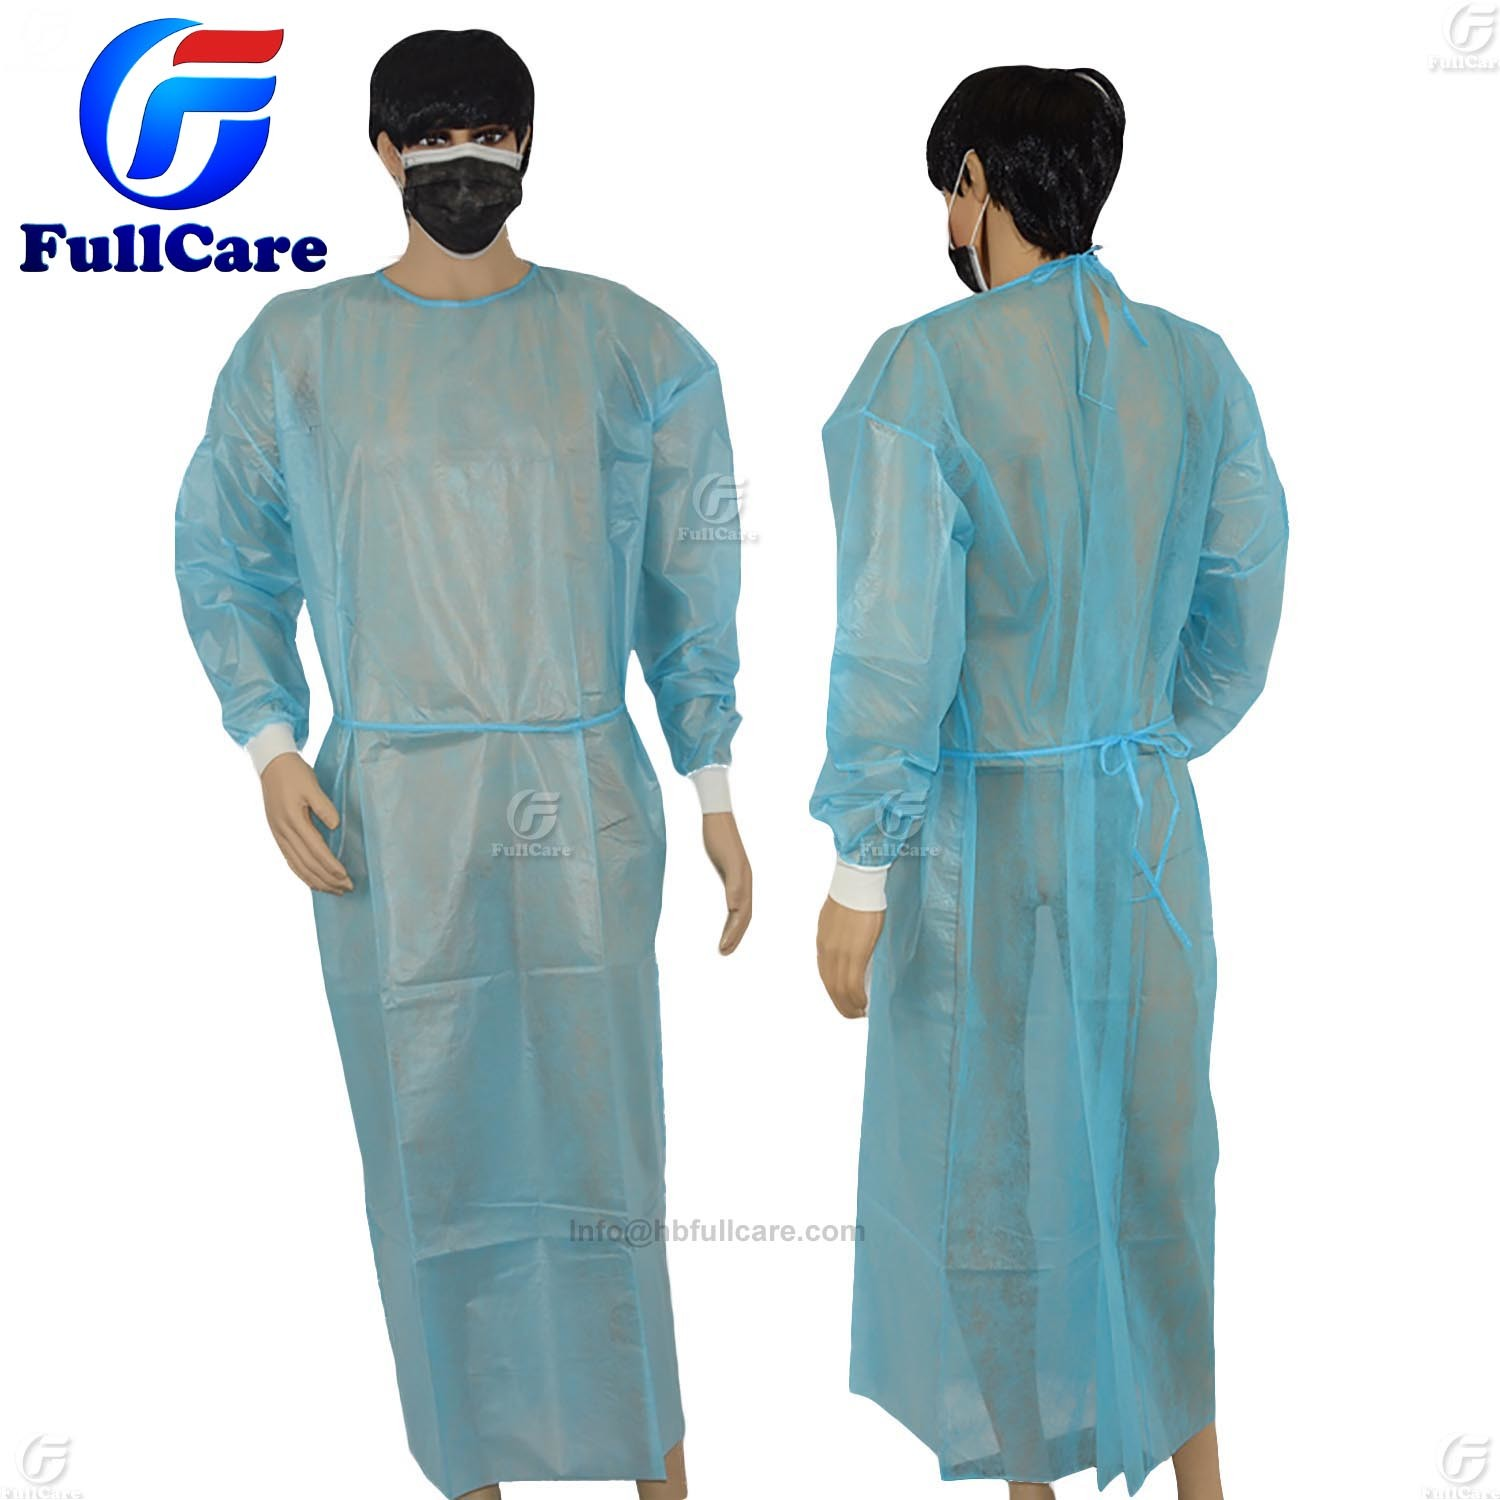 China Hospital Gown, CPE Gown, Disposable Isolation Gown, Medical ...